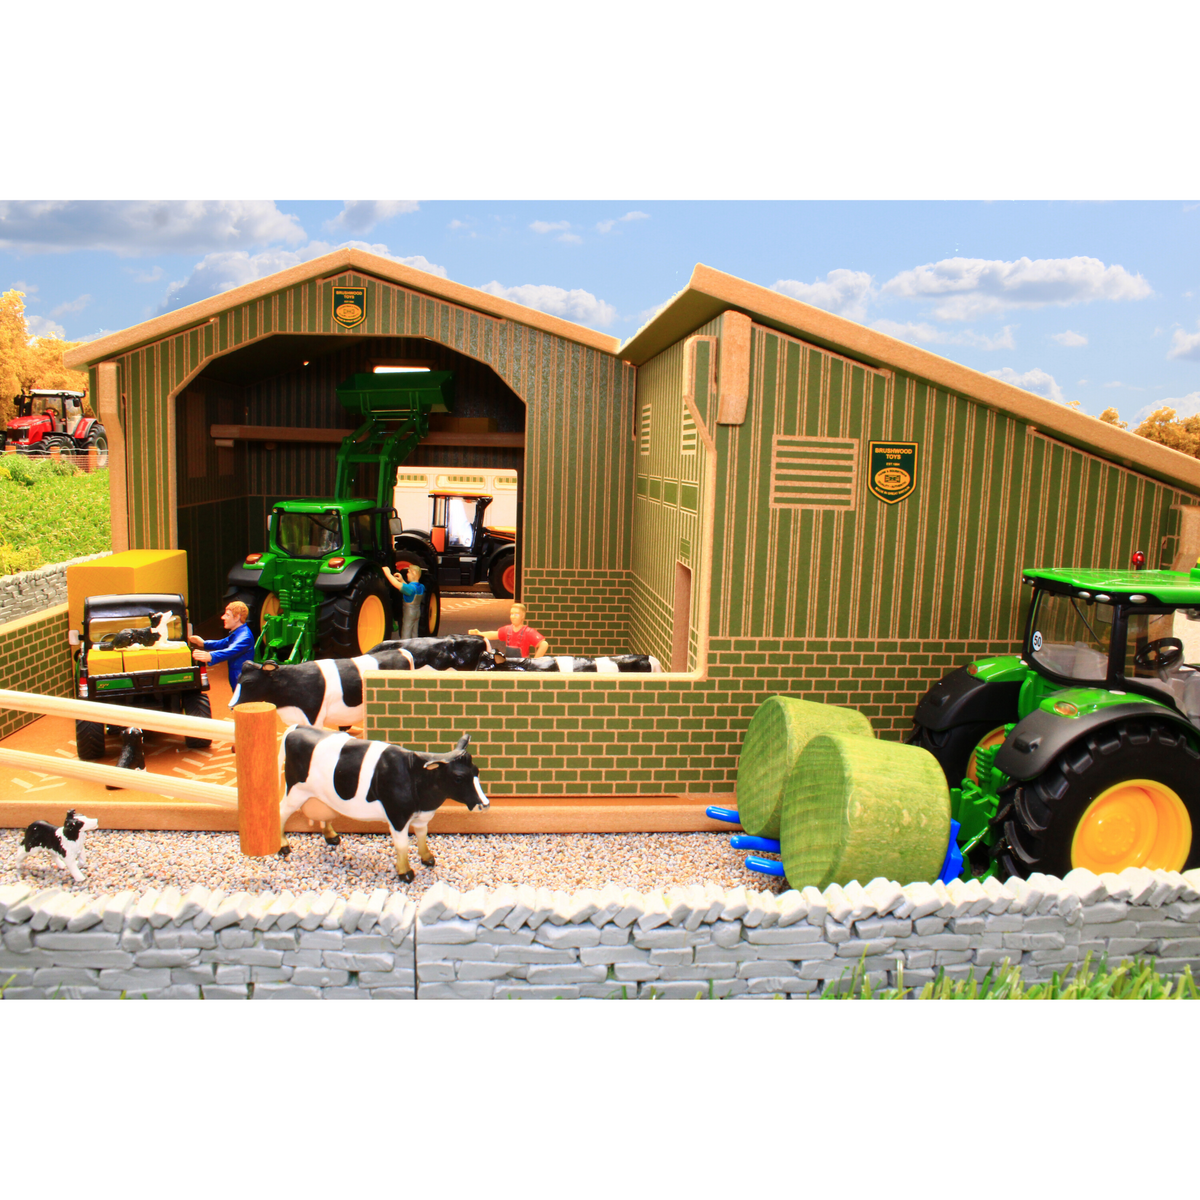 Brushwood Toys My First Farm Toy Building